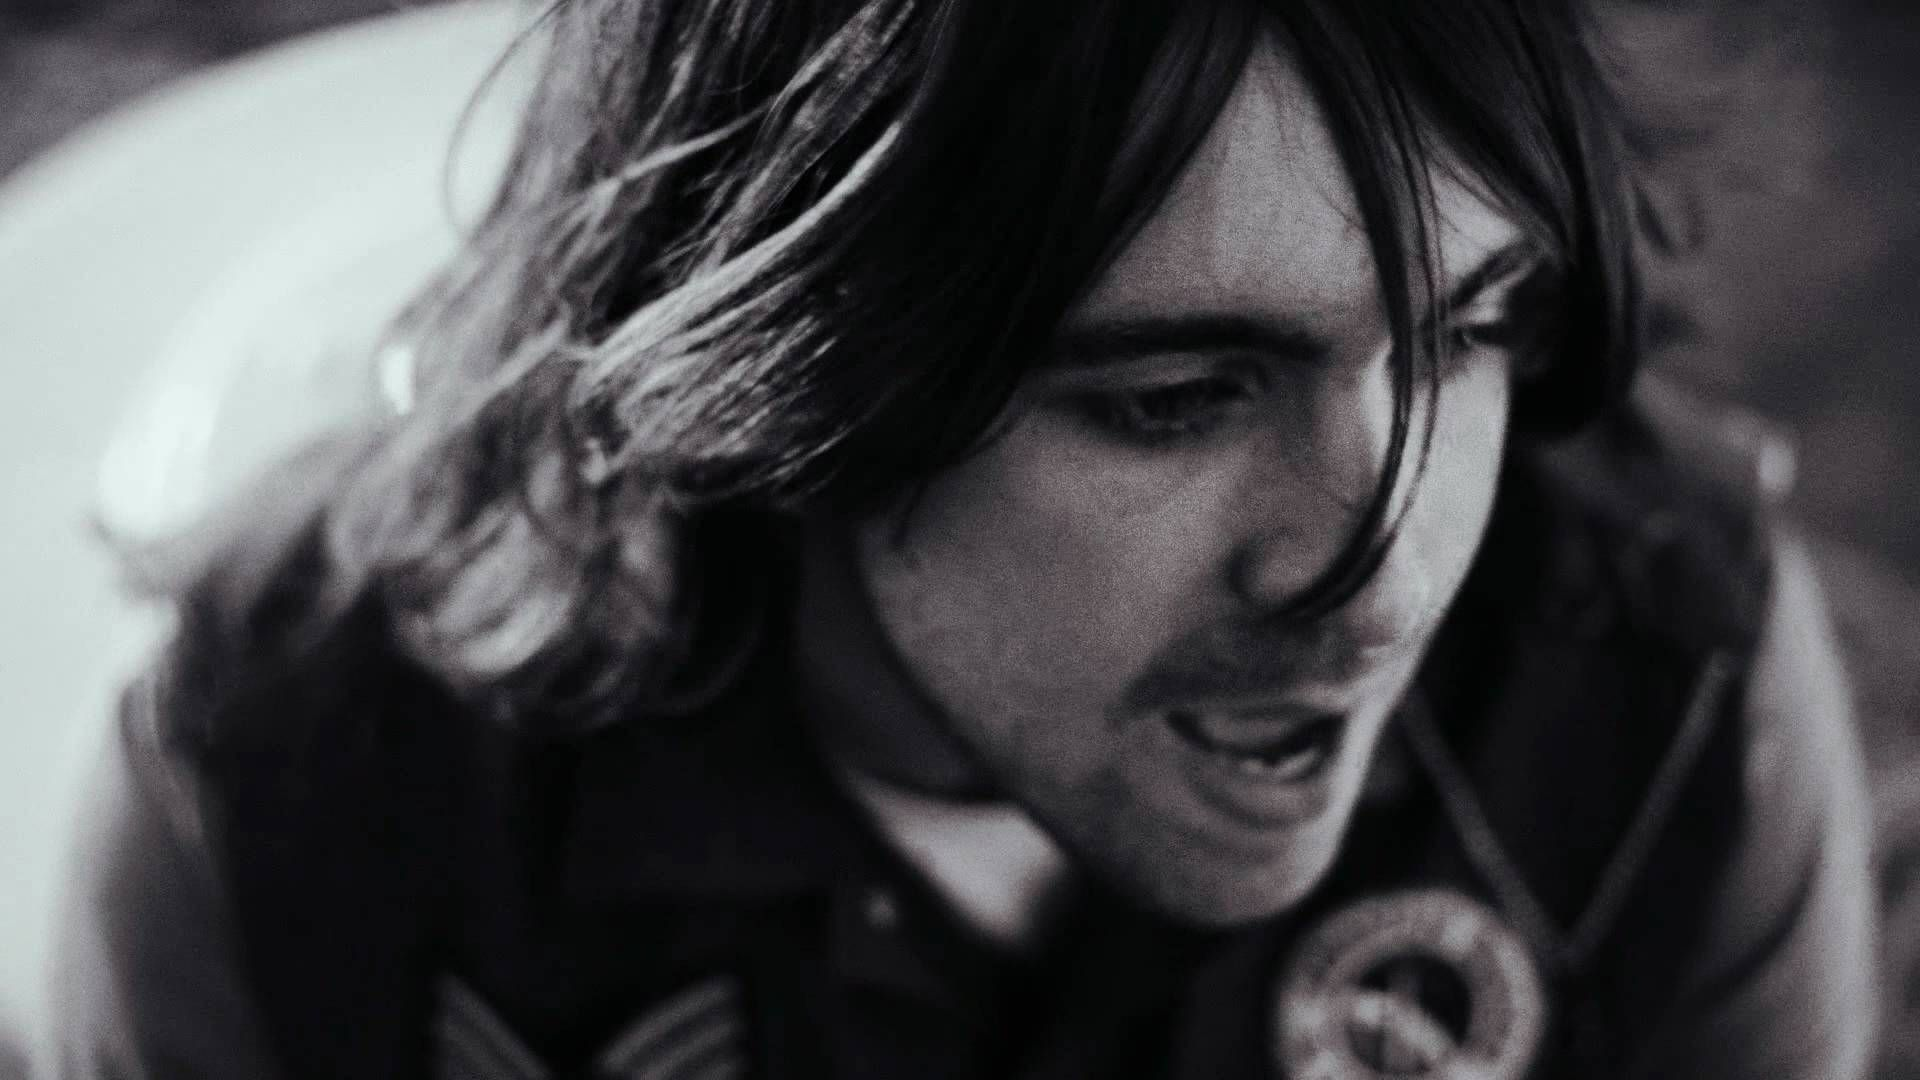 The Vaccines - No Hope (love this song. Totally the soundtrack to my life lol)